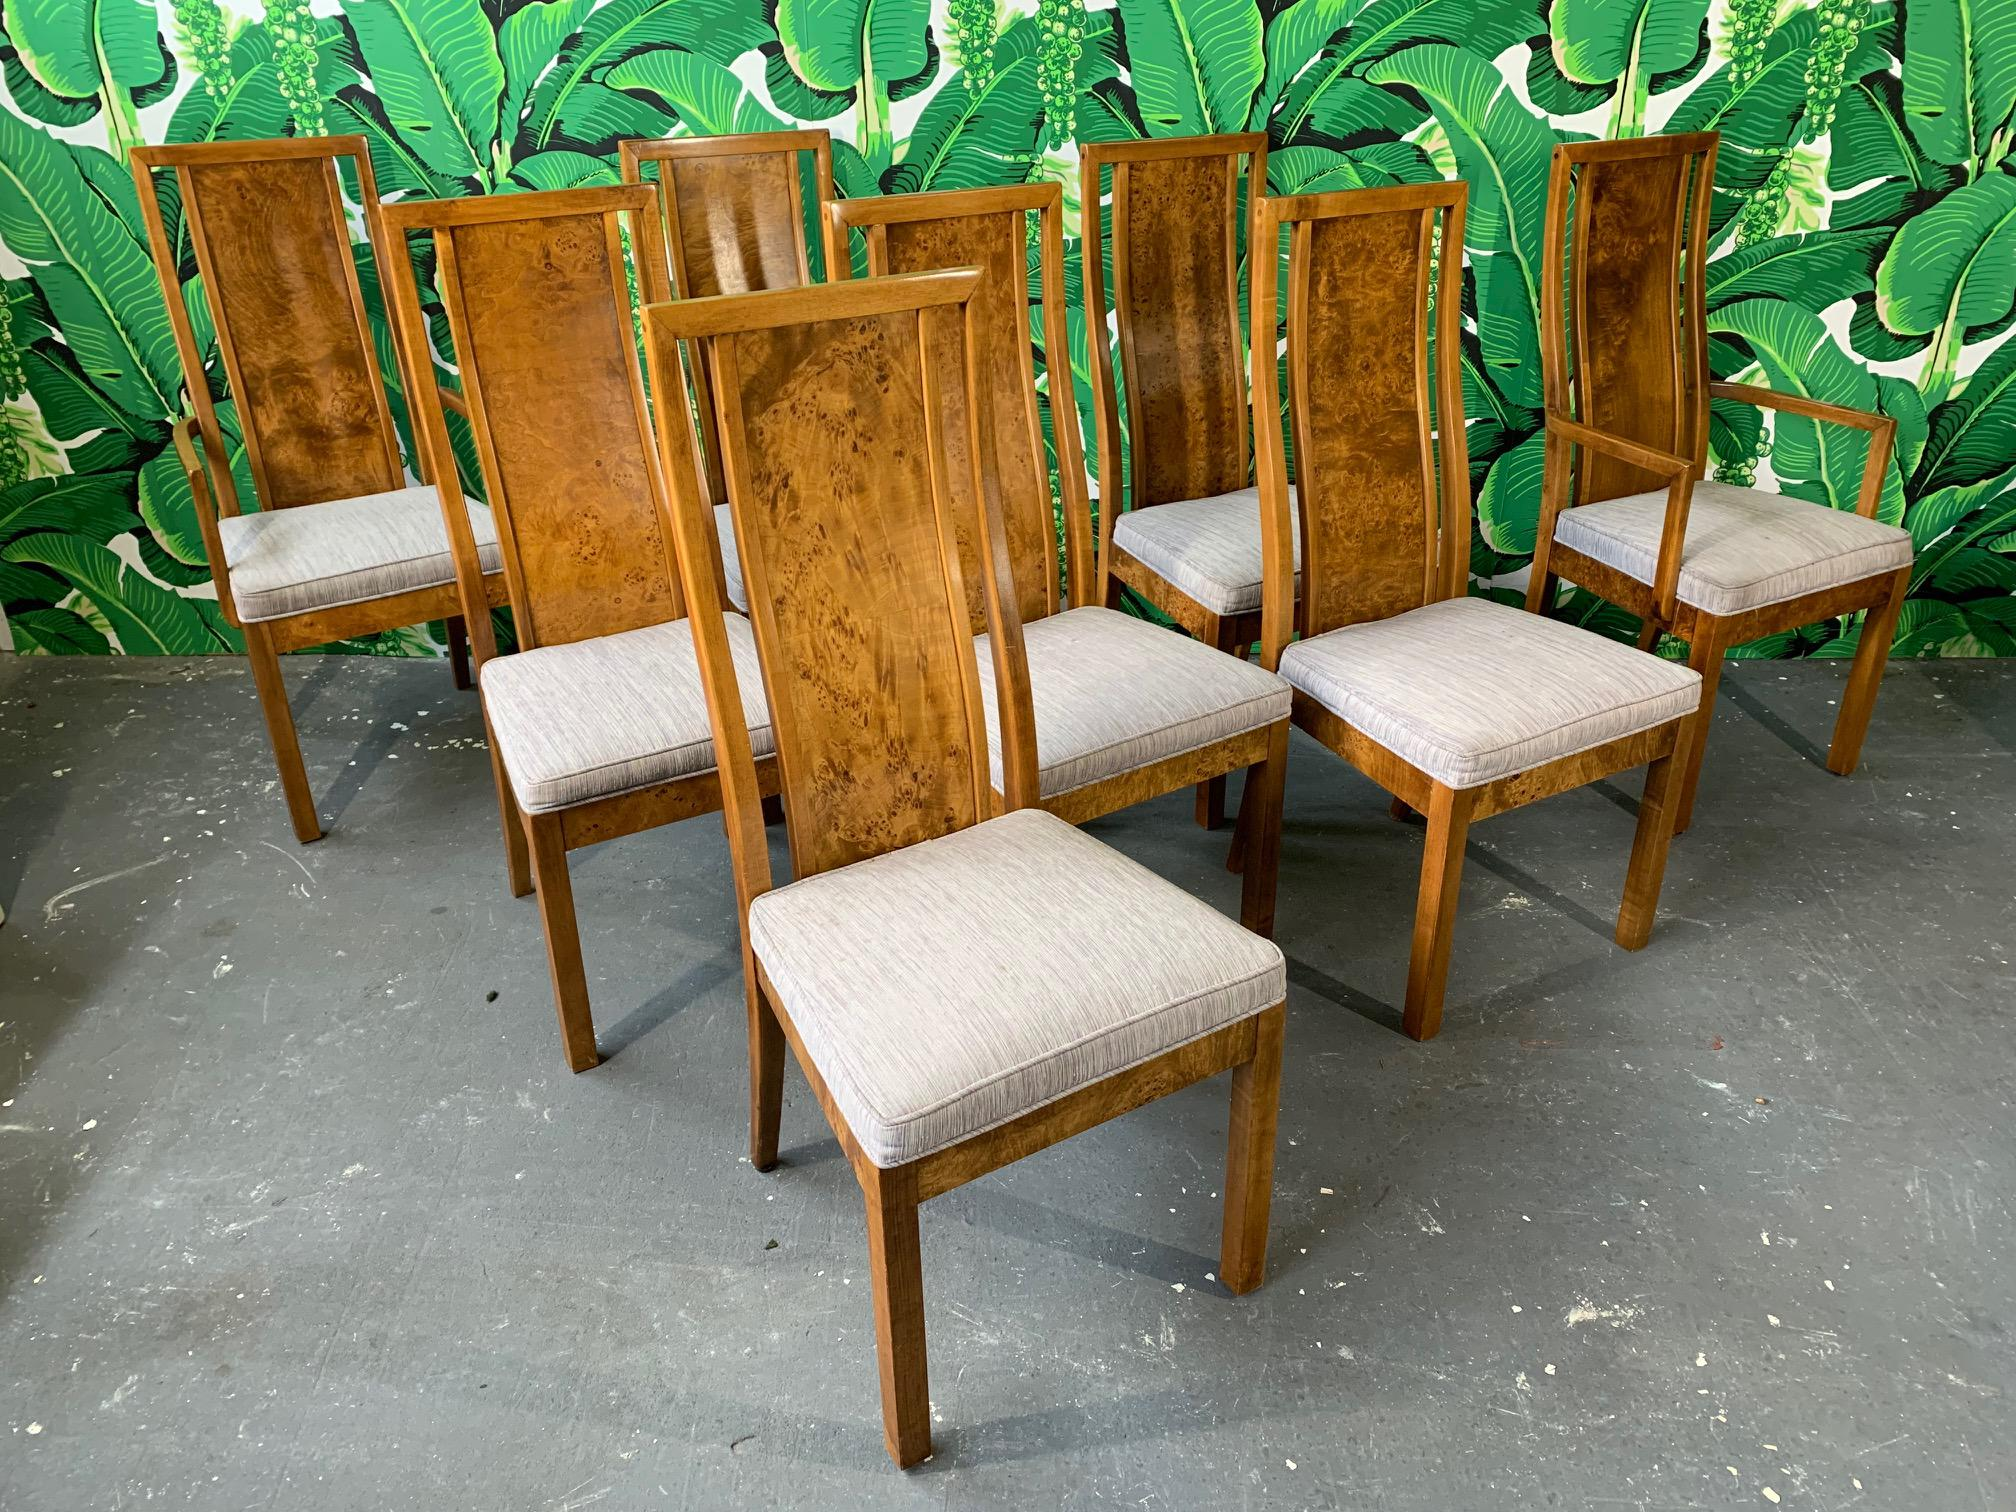 burl wood dining chairs by founders furniture in the manner of milo rh chairish com Burl Wood Ideas Exotic Wood Dash Kits